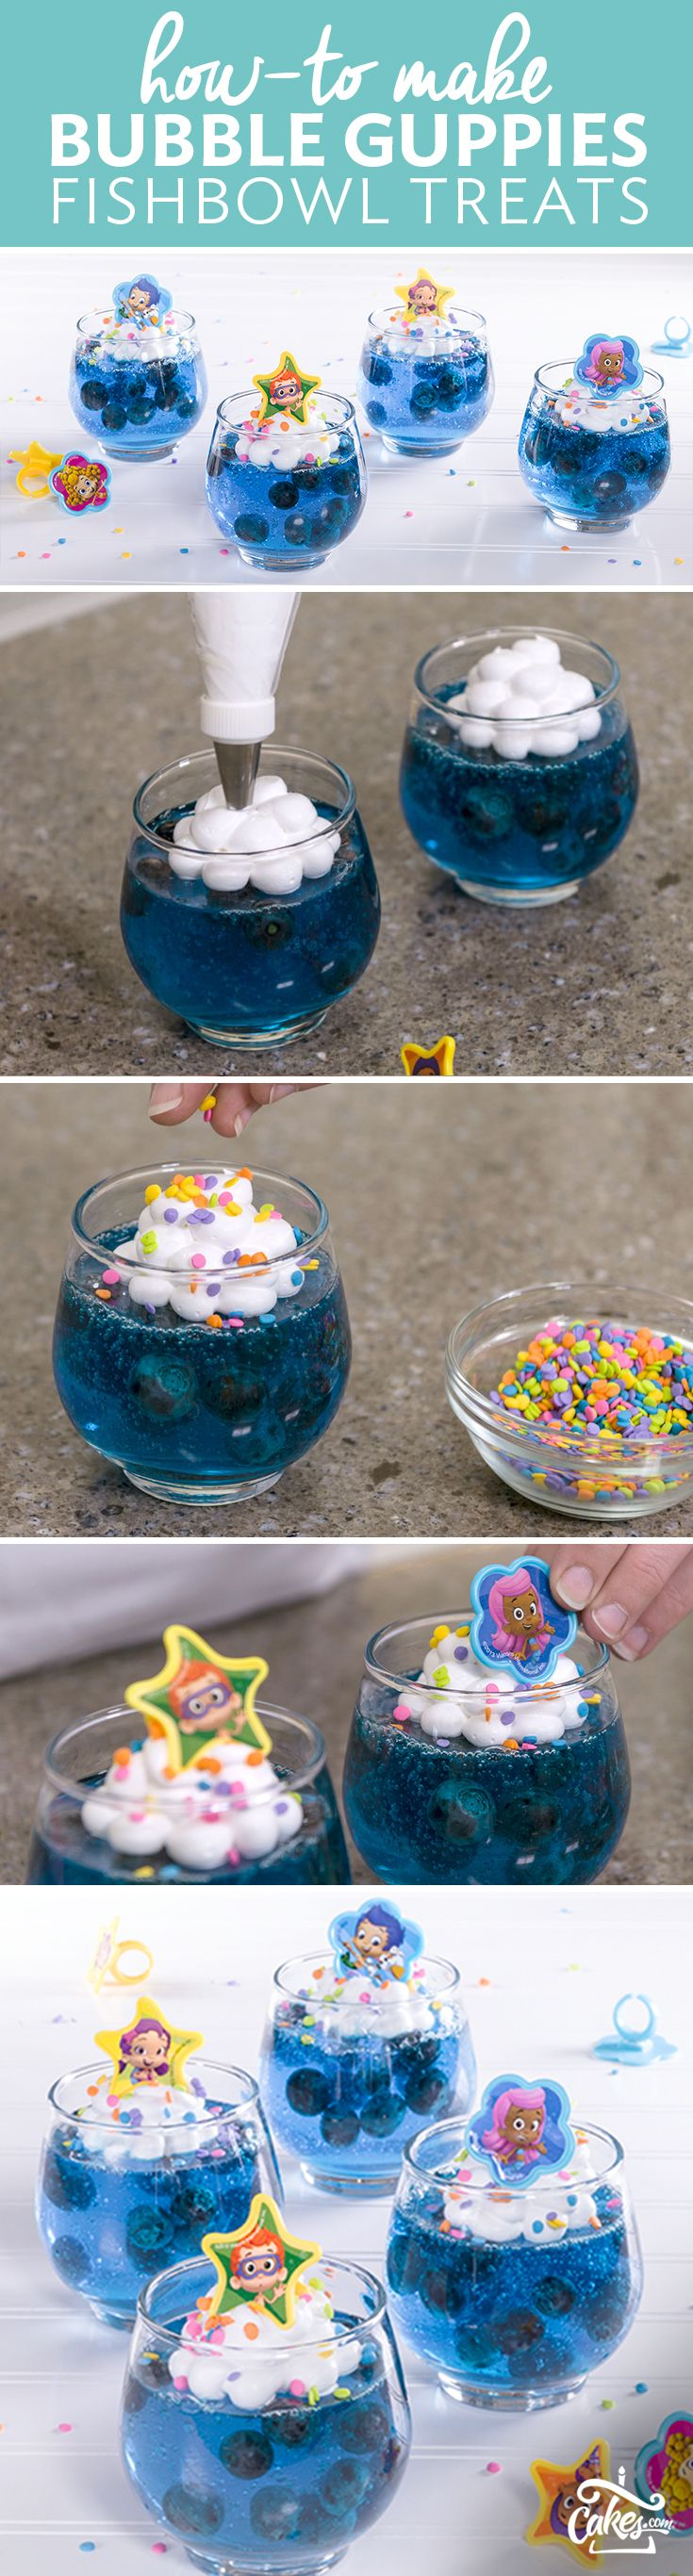 Easy birthday idea for Bubble Guppies - click for the tutorial and how to make it yourself